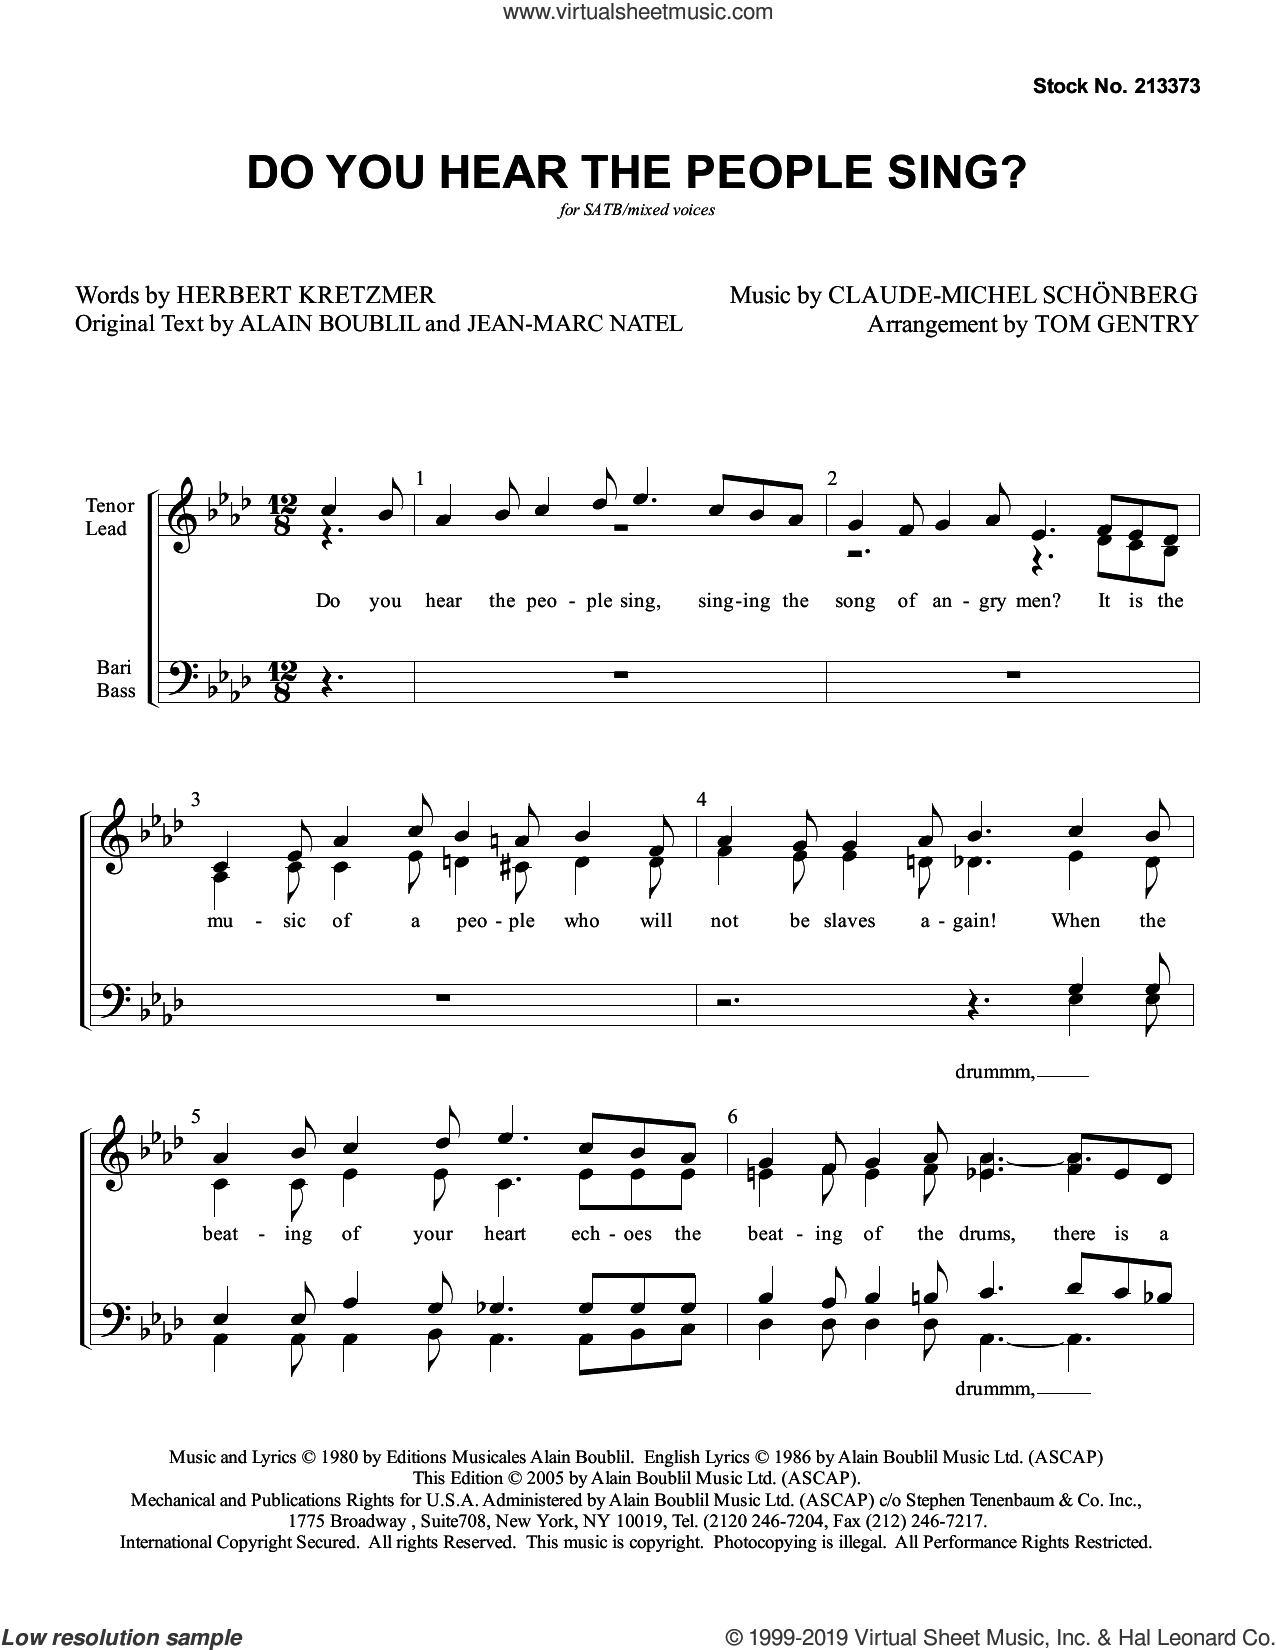 Do You Hear The People Sing? (from Les Miserables) (arr. Tom Gentry) sheet music for choir (SATB: soprano, alto, tenor, bass) by Boublil and Schonberg, Tom Gentry, Alain Boublil, Claude-Michel Schonberg, Herbert Kretzmer and Jean-Marc Natel, intermediate skill level